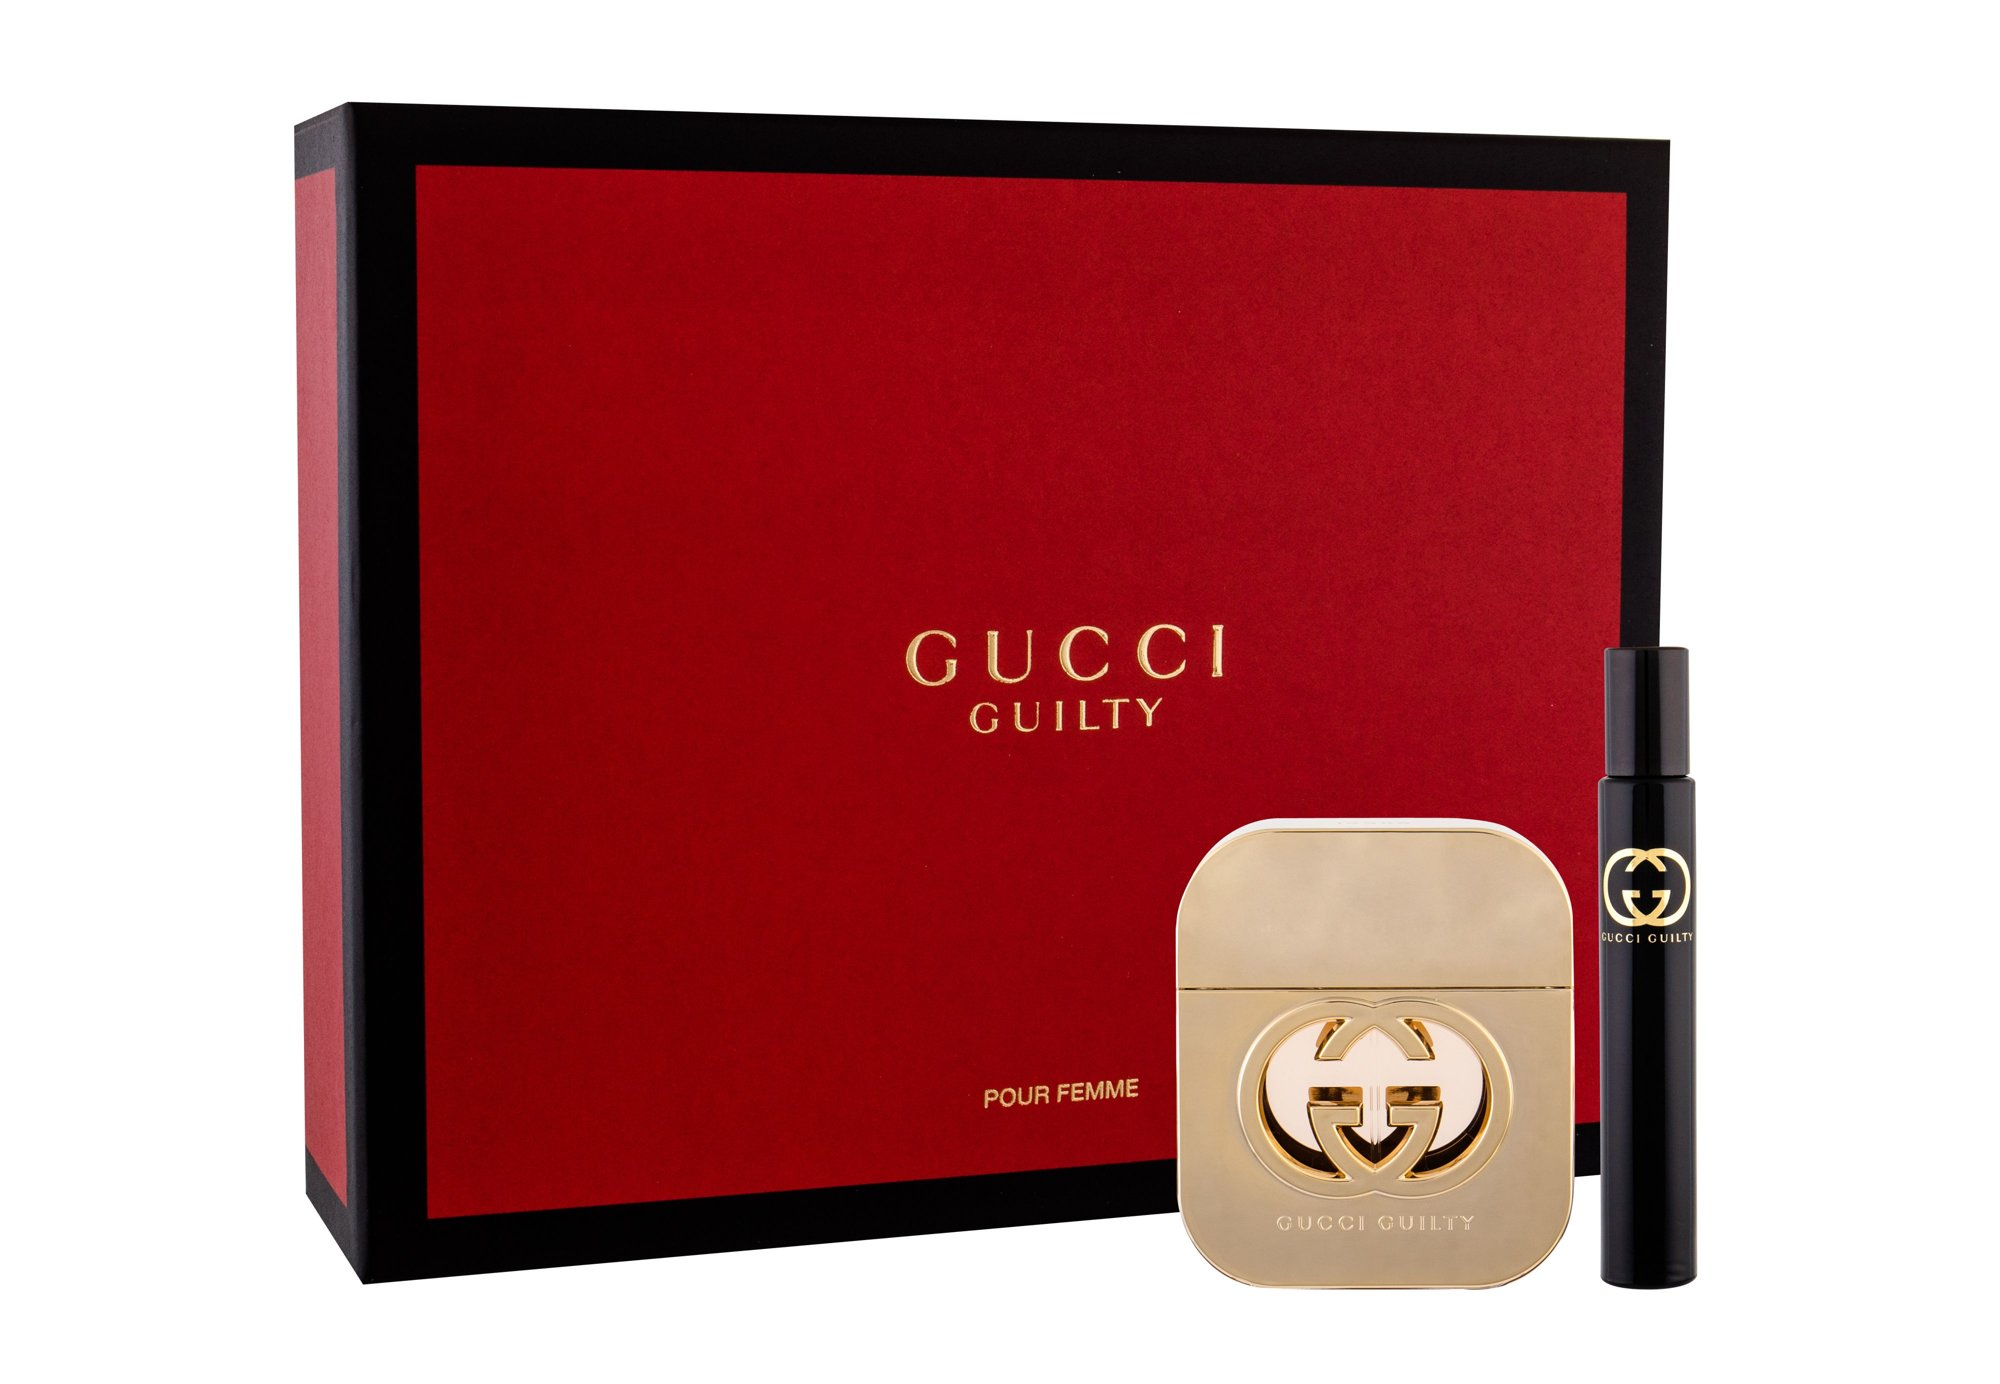 Gucci Gucci Guilty Eau de Toilette 50ml